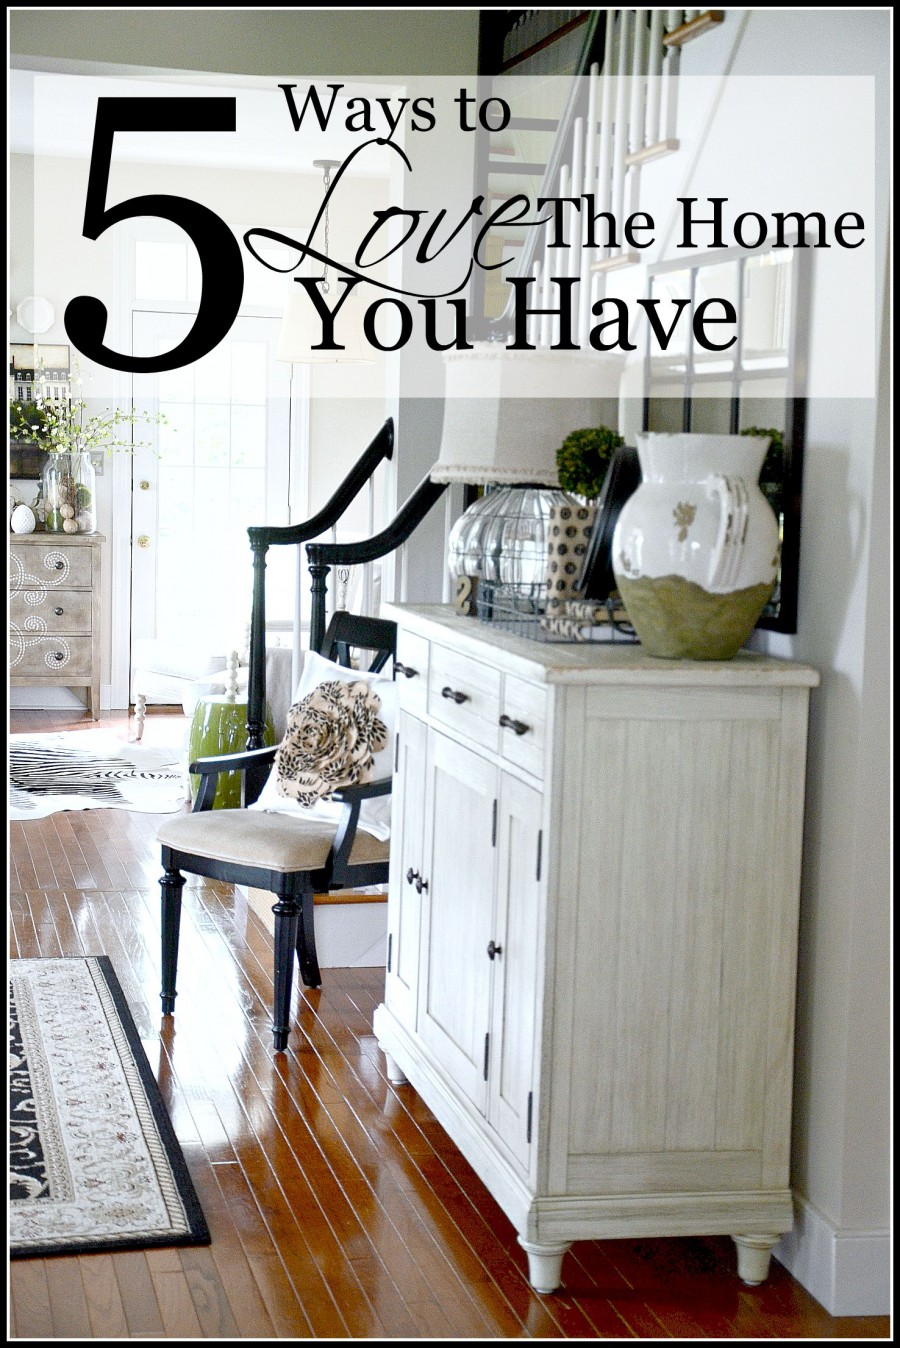 http://www.stonegableblog.com/5-ways-to-love-the-home-you-have/